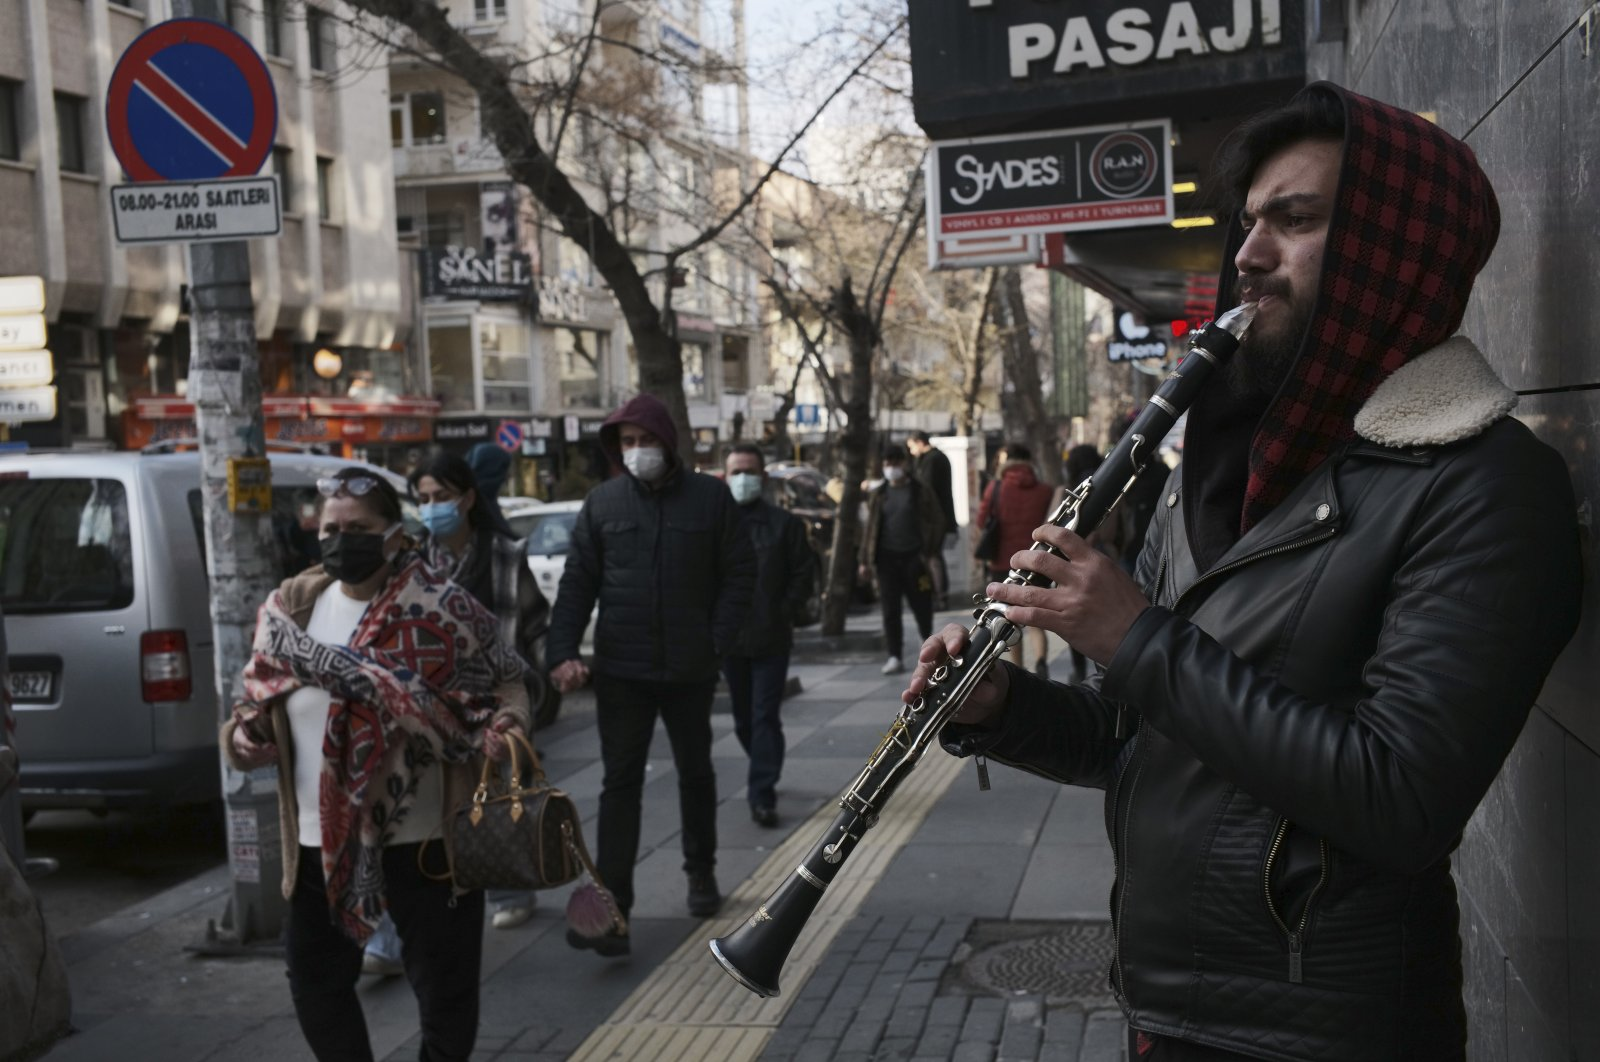 People wearing masks to help protect against the spread of coronavirus, walk past a musician in Ankara, Turkey, April 2, 2021. (AP Photo/Burhan Ozbilici)